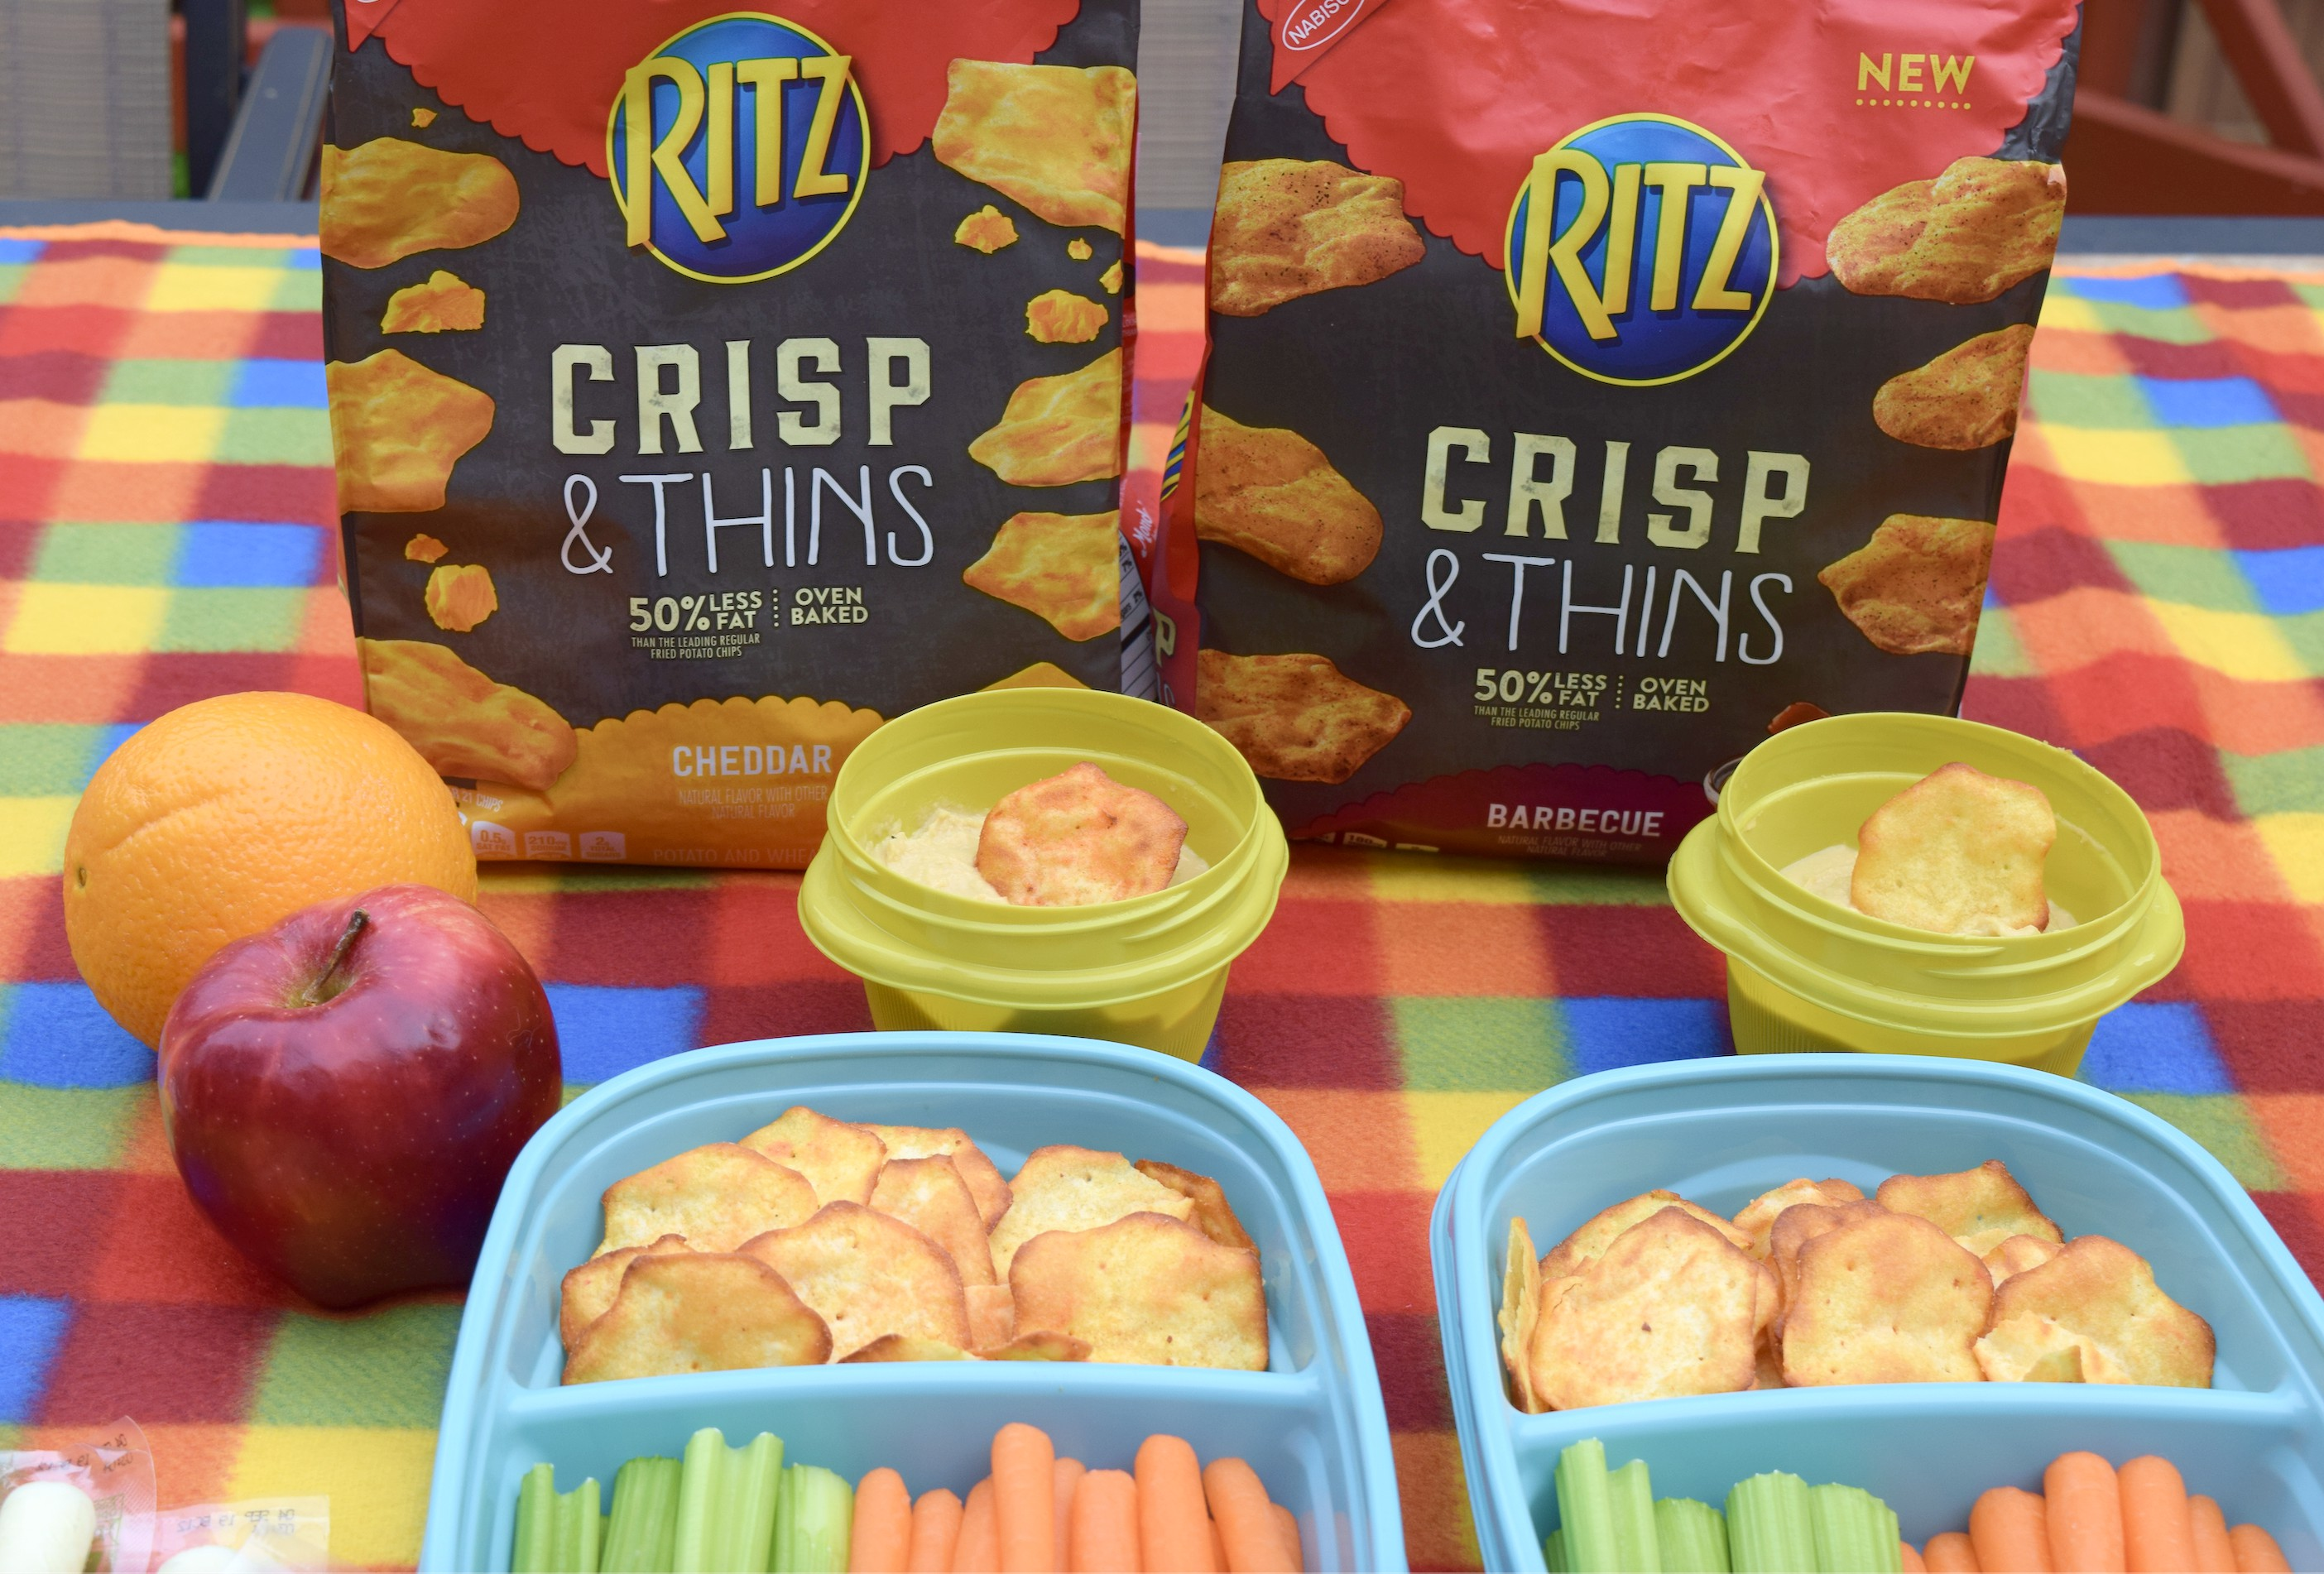 RITZ Crisp & Thins Cheddar and Barbecue cracker chips are a great, convenient snacks for family road trips, picnics or to serve at any gatherings!